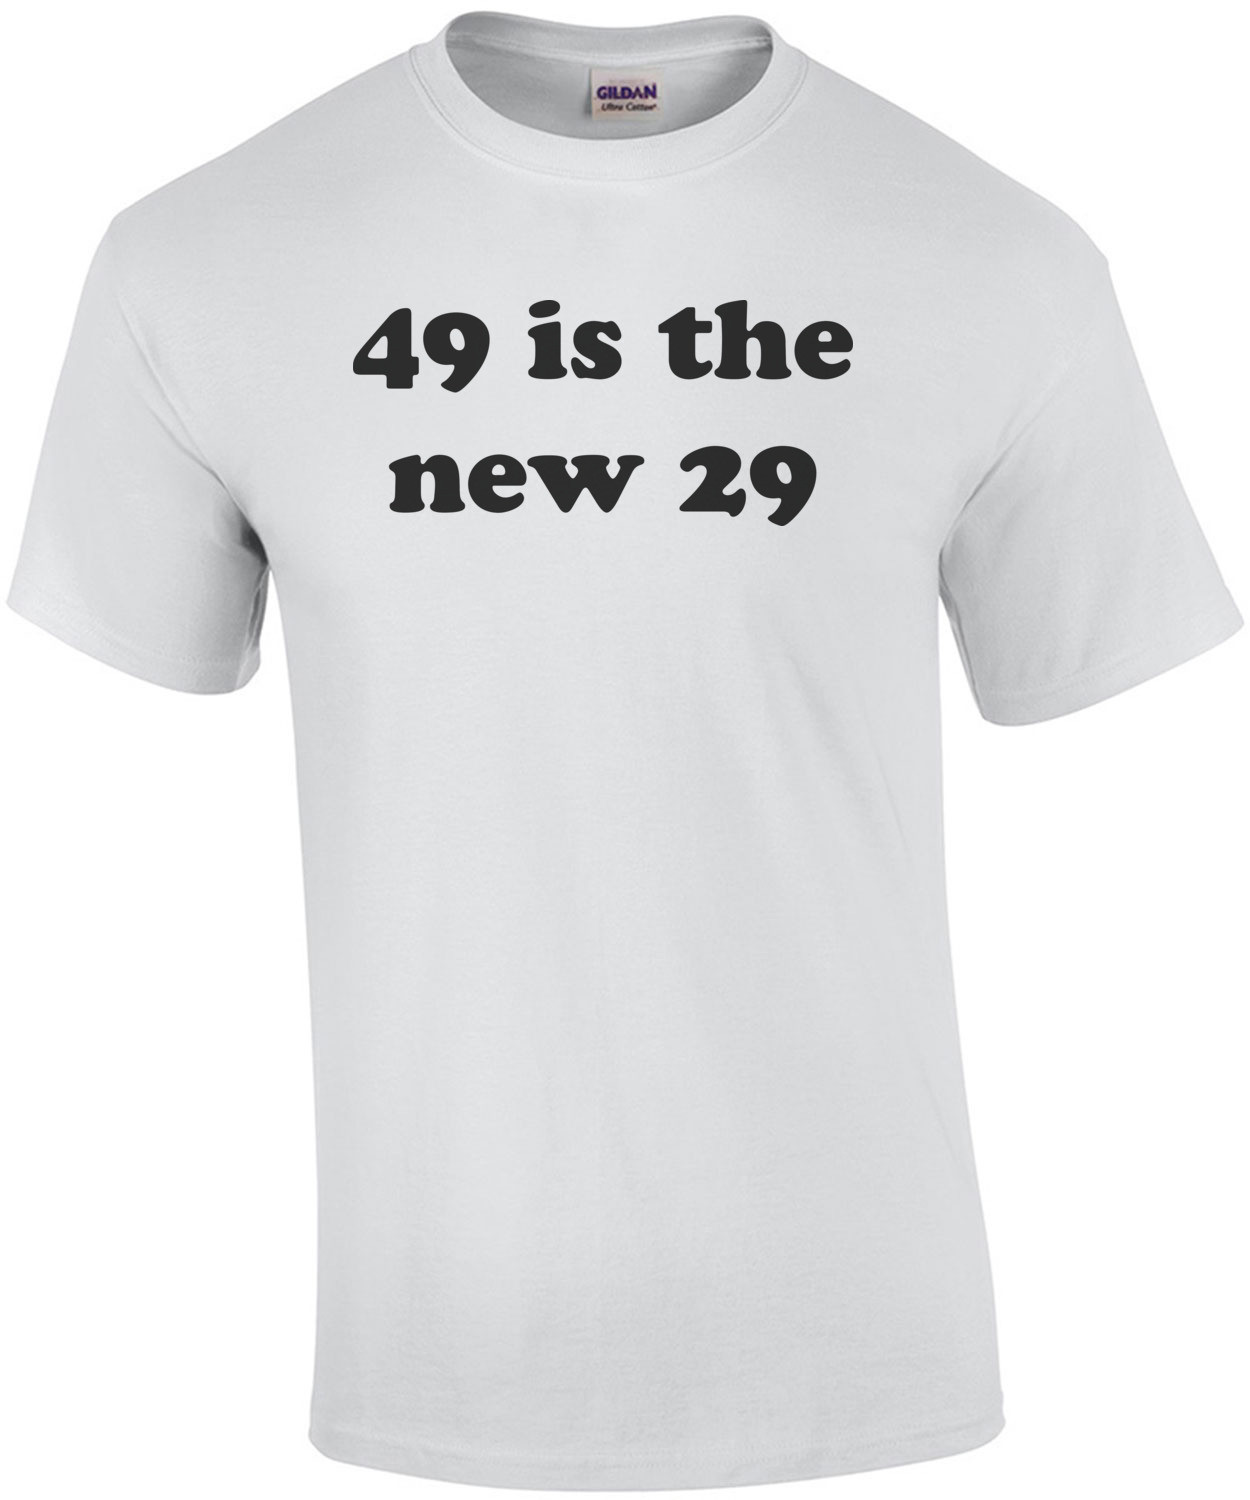 49 is the new 29. Happy Birthday T-Shirt Shirt